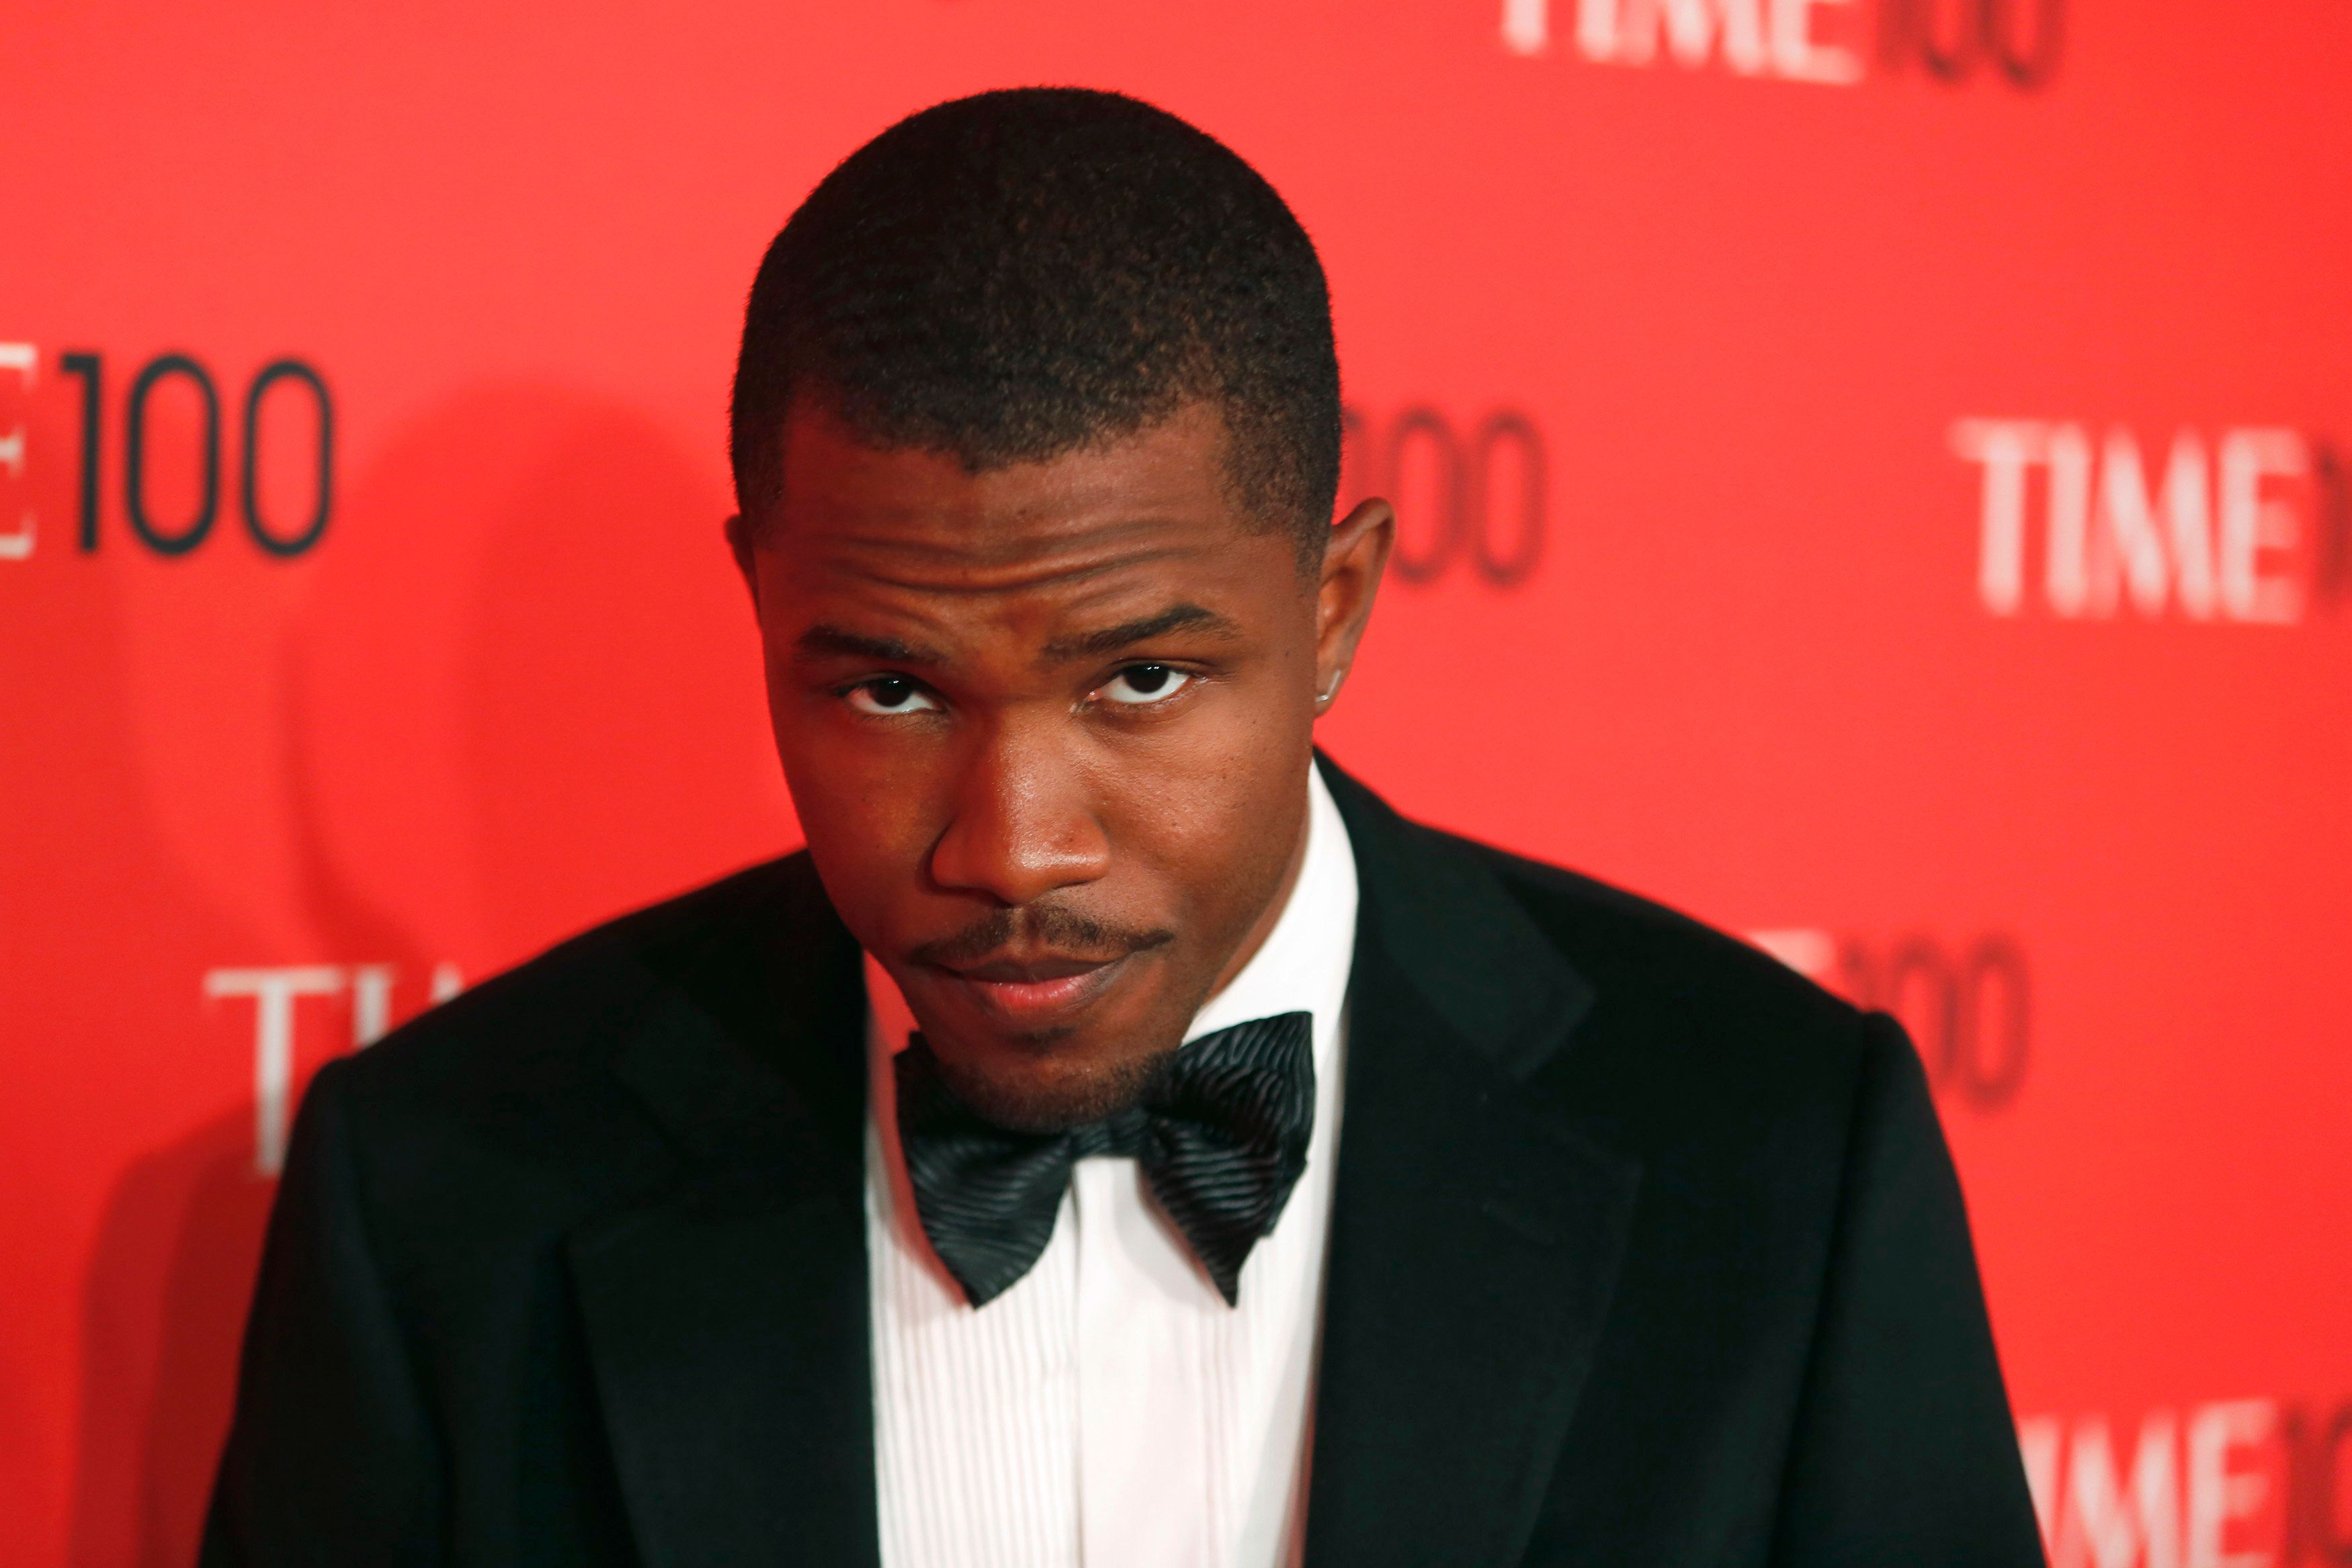 Singer Frank Ocean arrives for the Time 100 gala celebrating the magazine's naming of the 100 most influential people in the world for the past year, in New York, April 23, 2013. REUTERS/Lucas Jackson (UNITED STATES - Tags: ENTERTAINMENT)